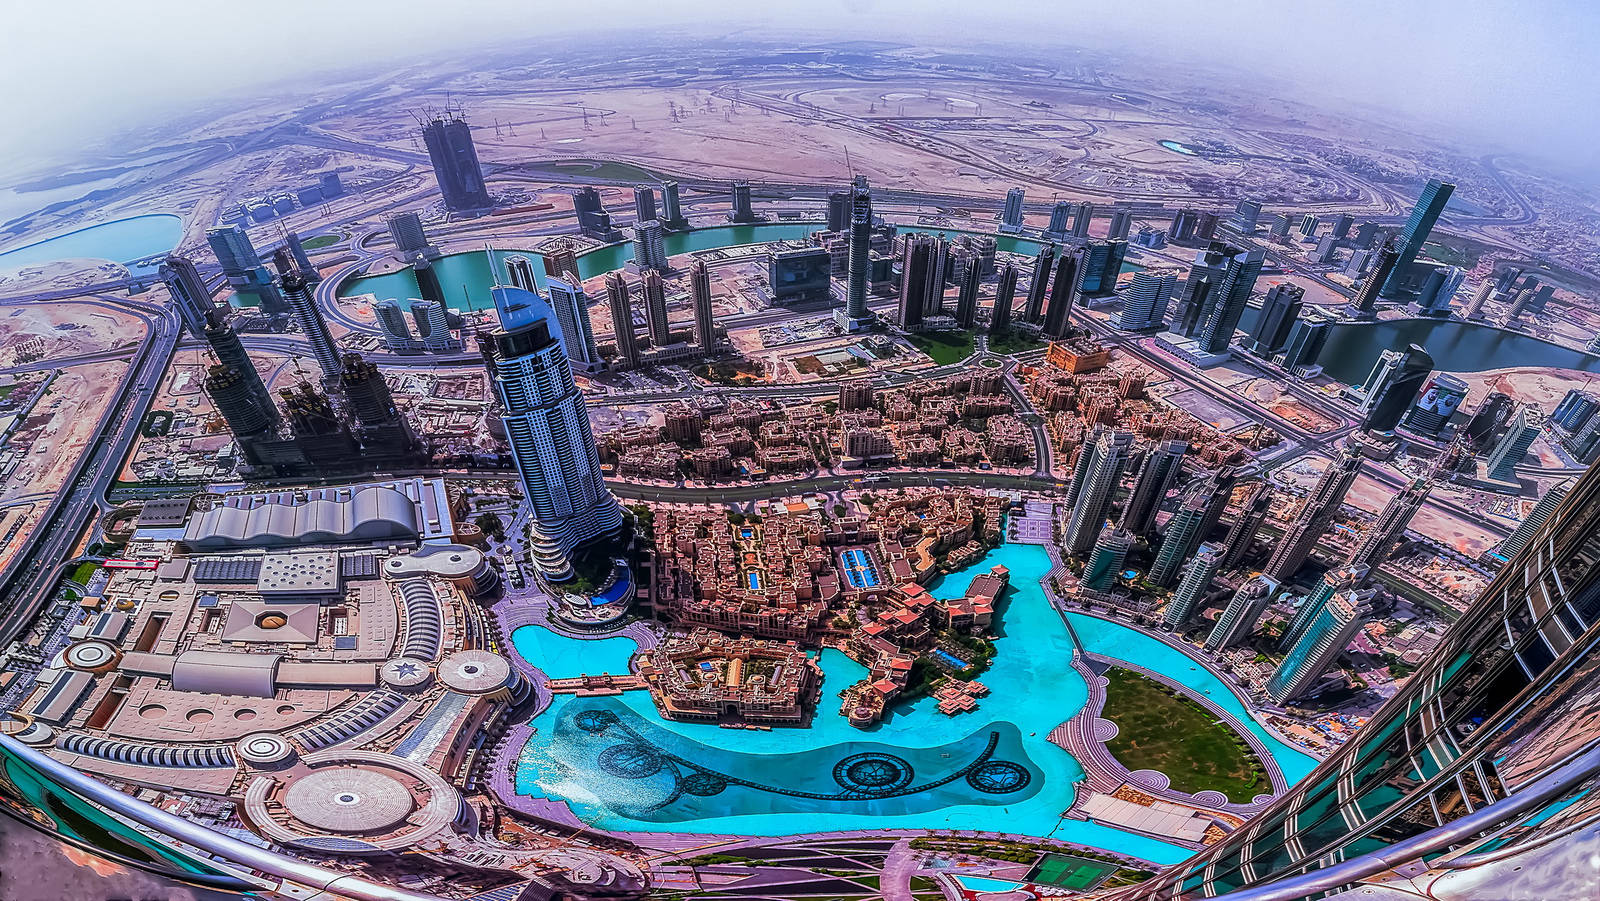 Middle east investment opportunities darkom investment company